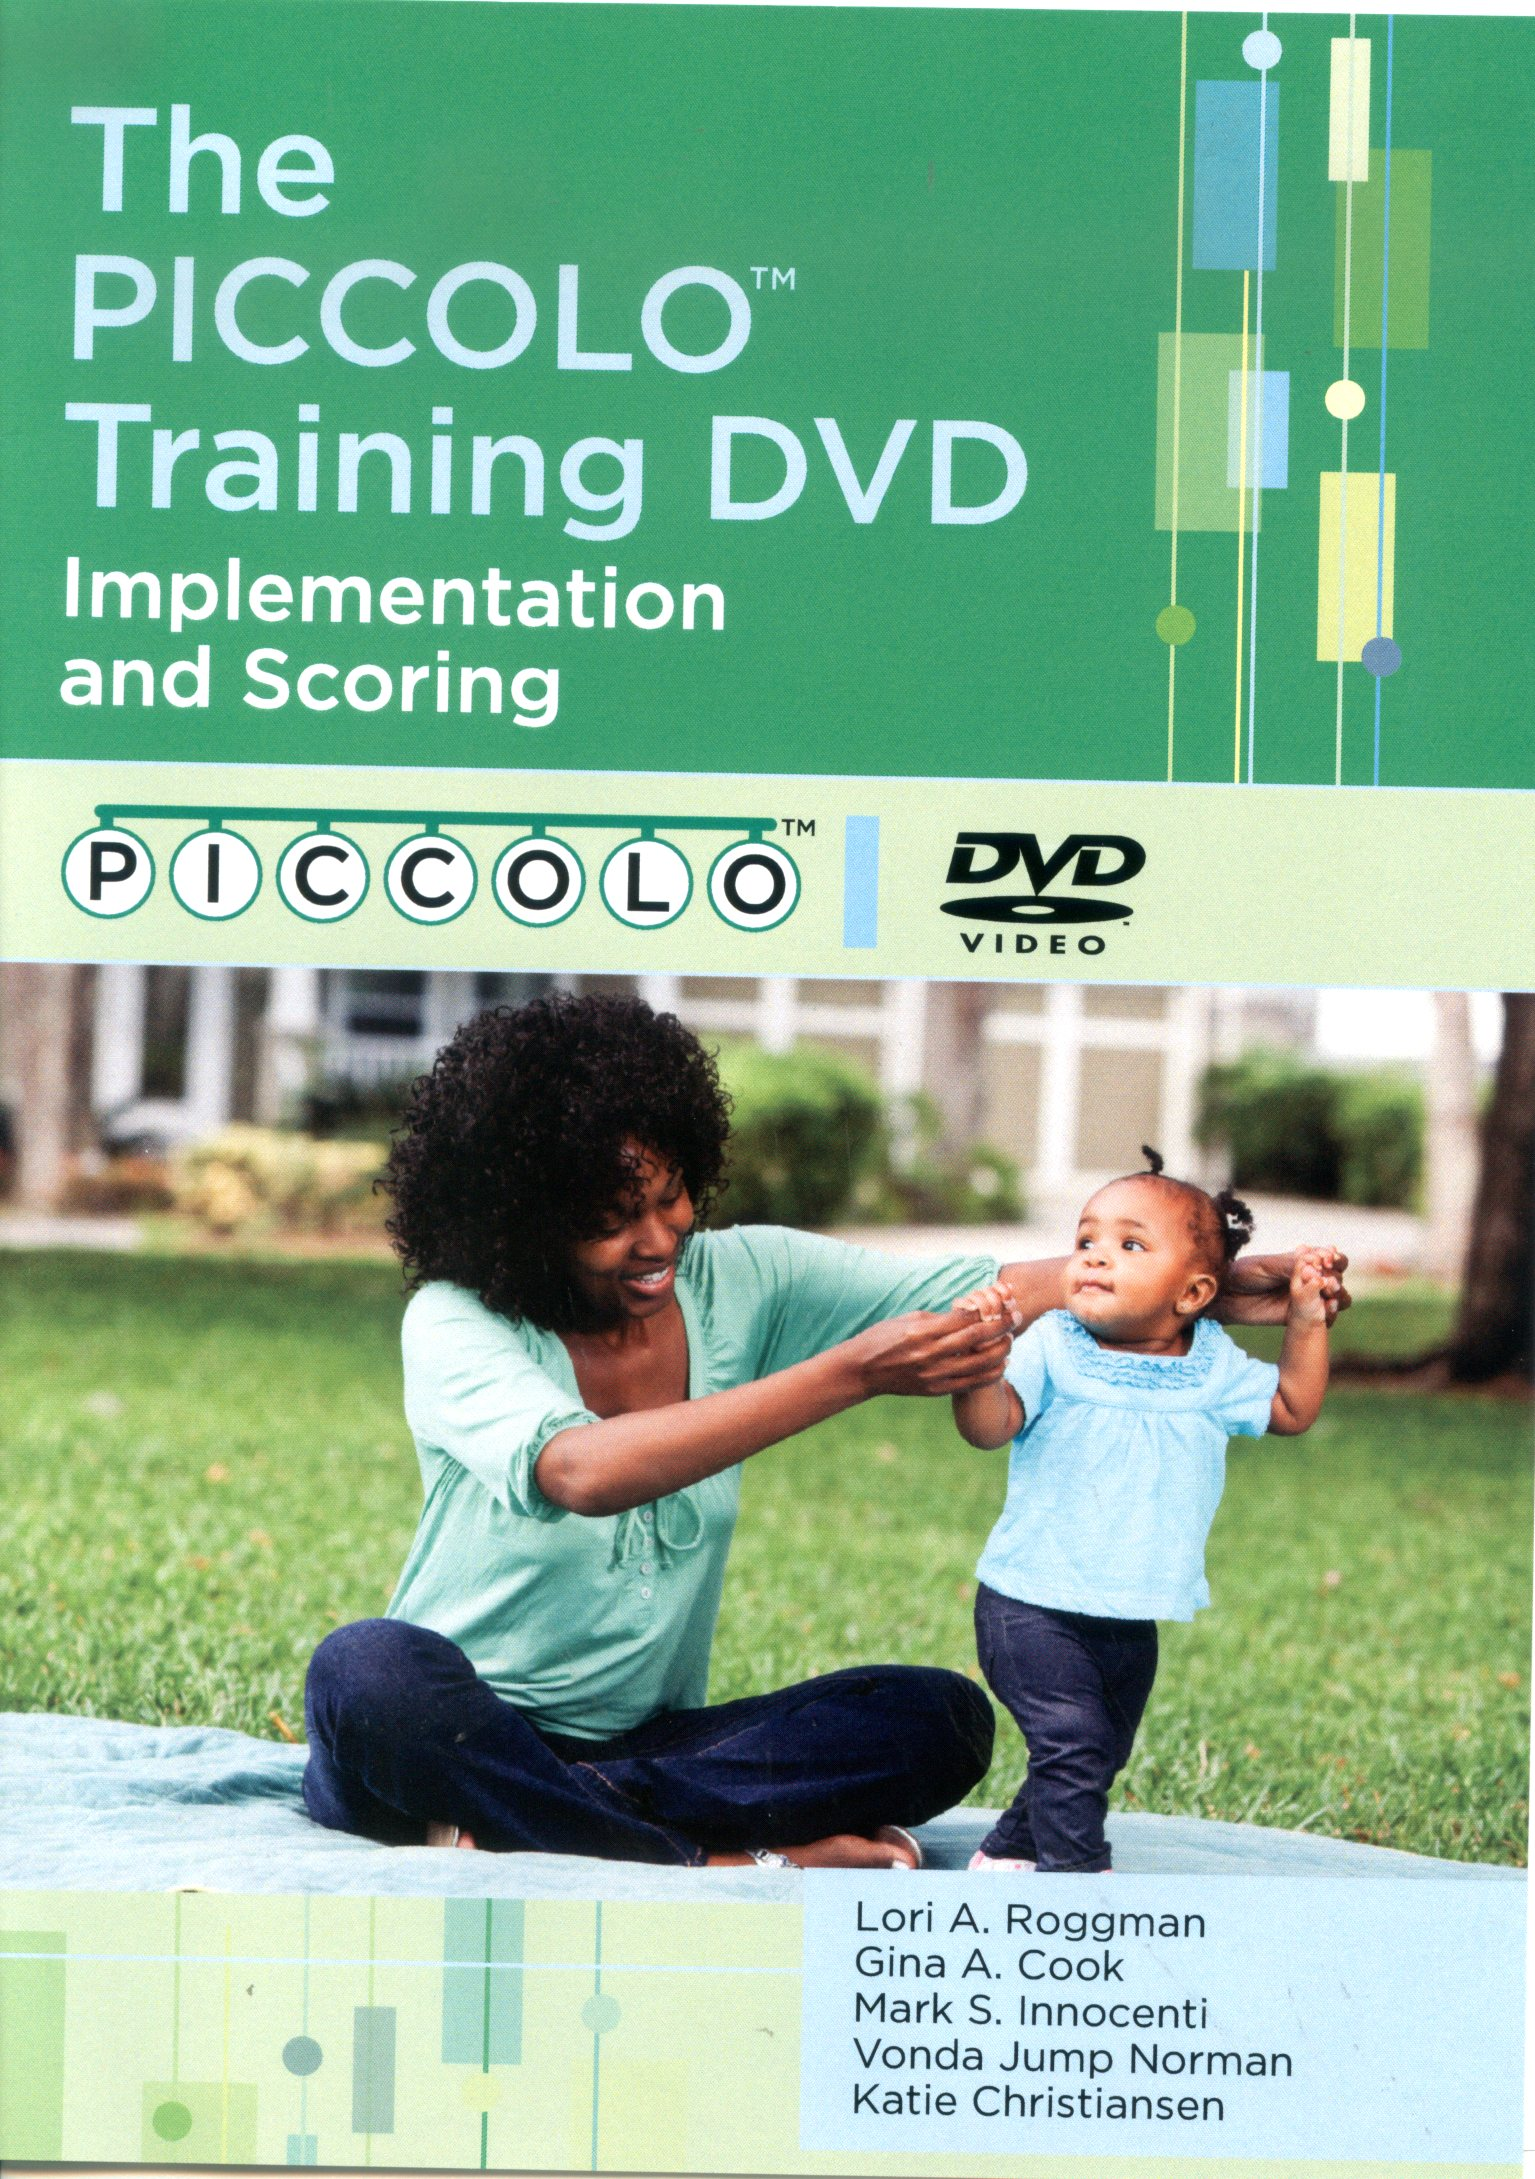 The Piccolo training DVD implementation and scoring /